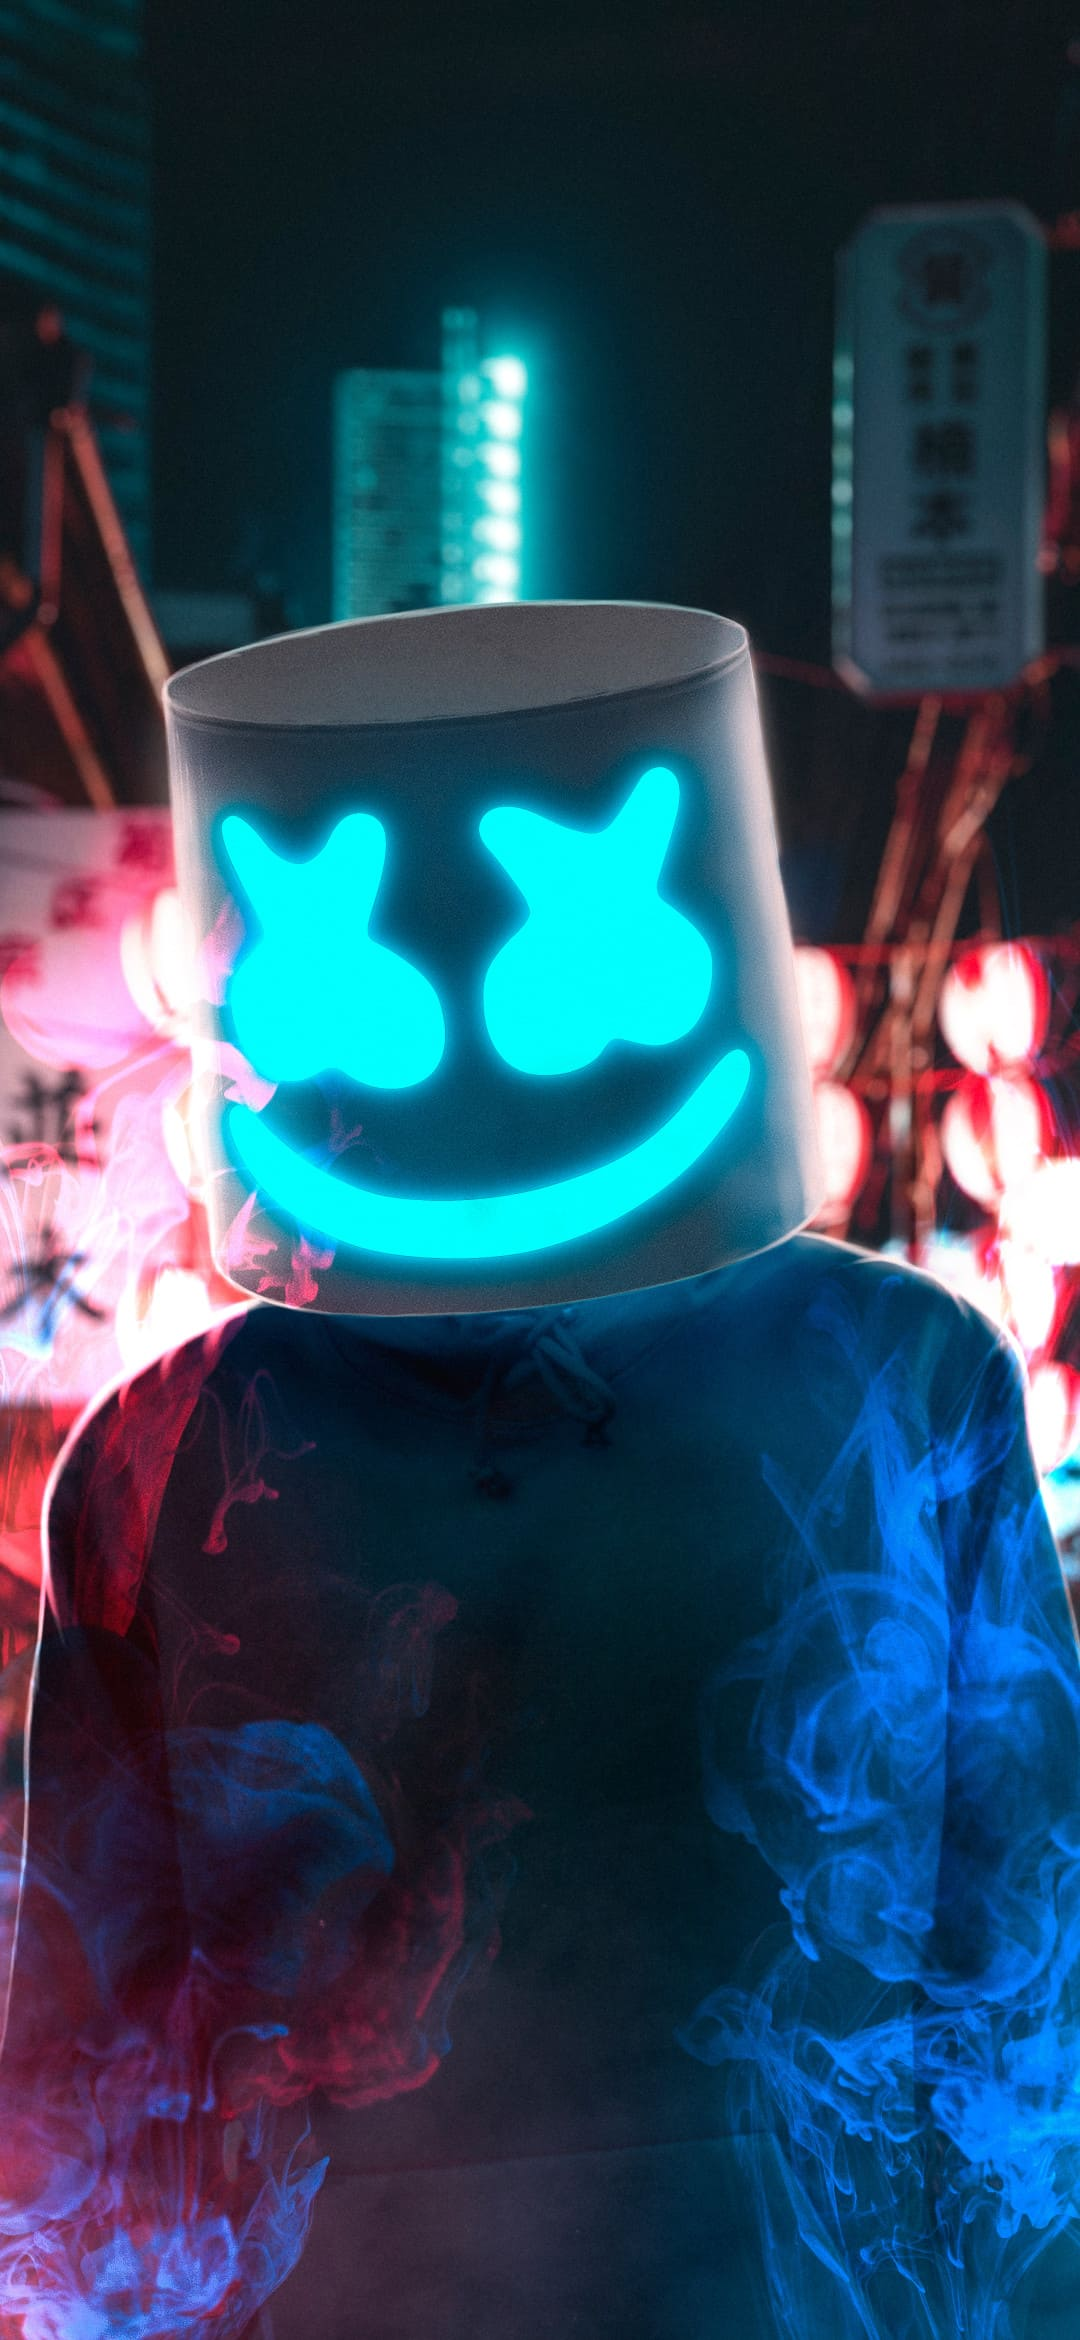 Marshmello Wallpapers Top 75 Best Marshmello Hd Wallpaper Download 2020